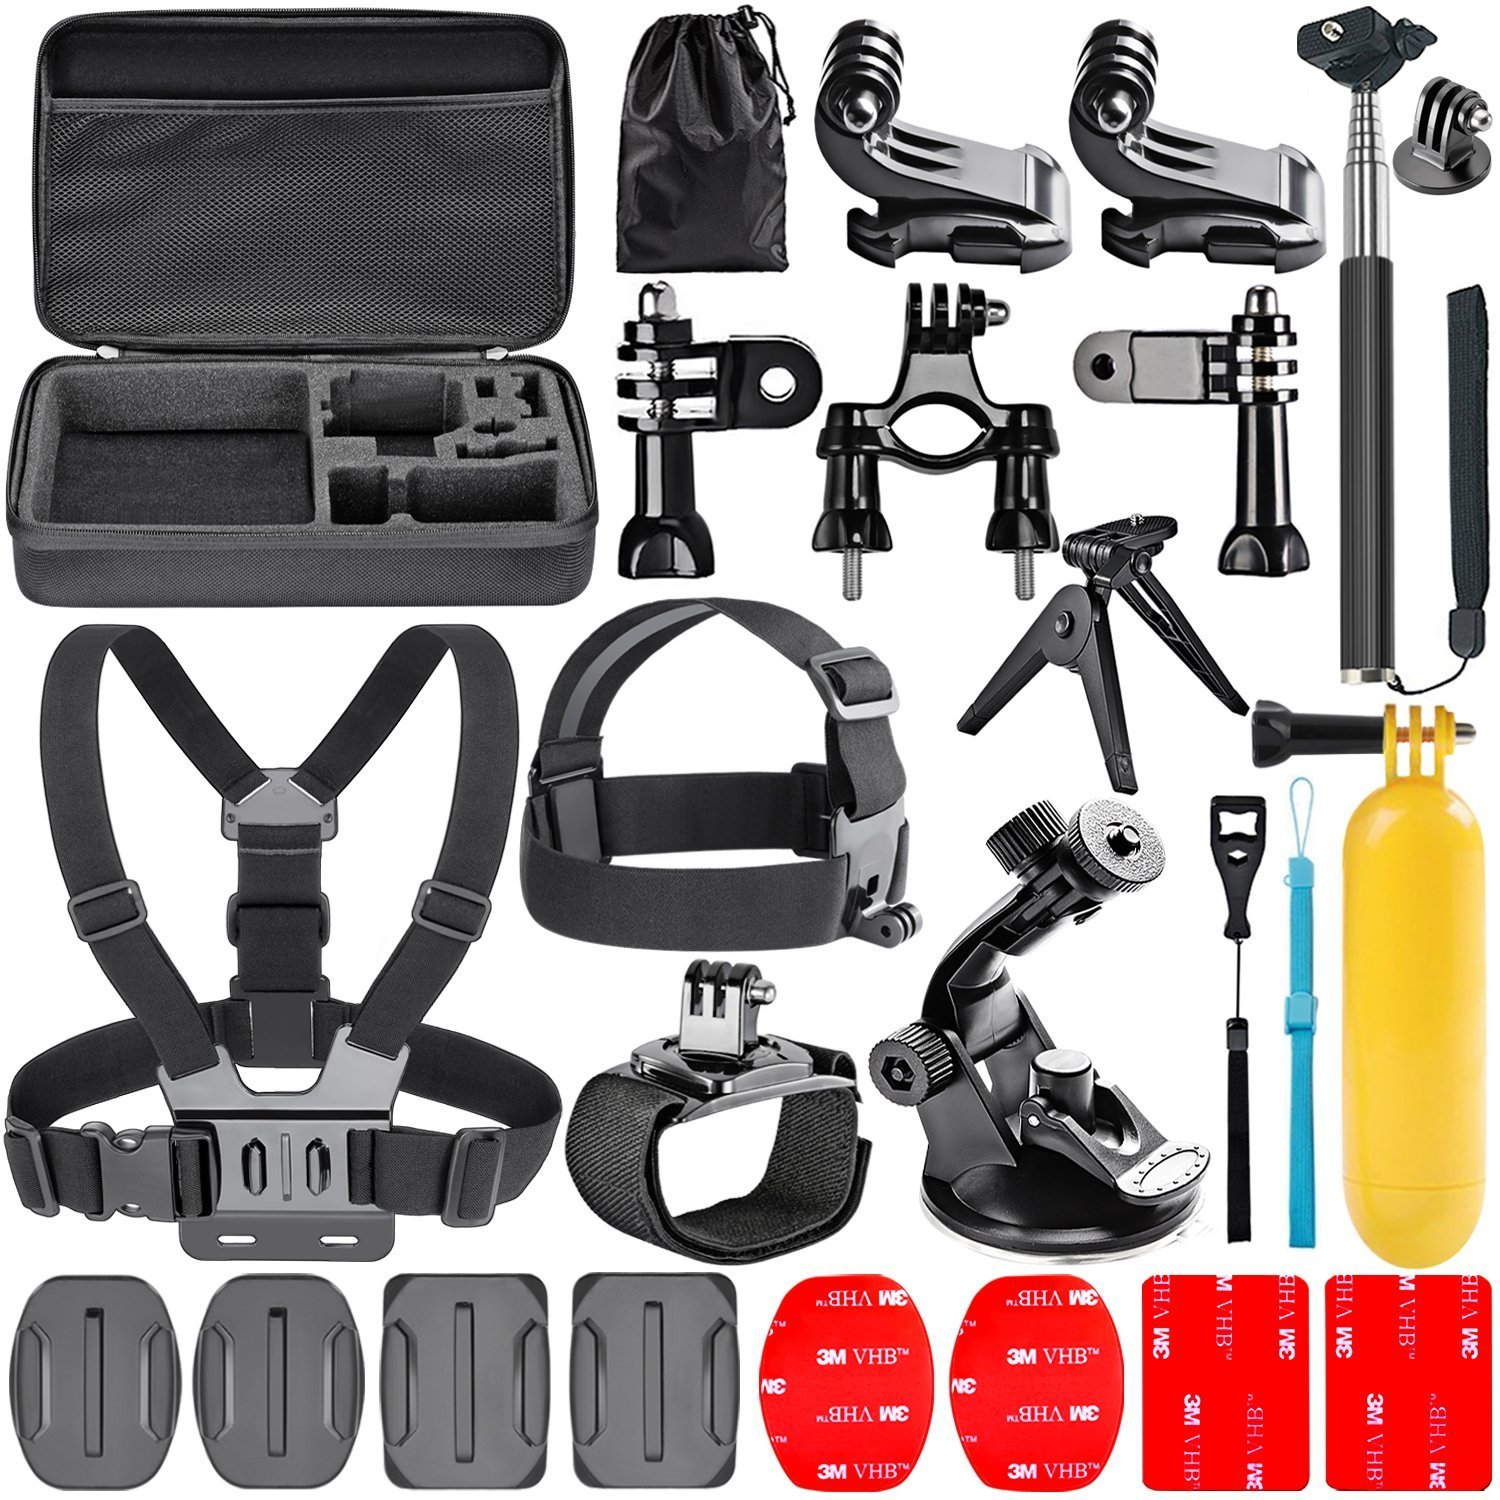 Navitech 18 in 1 Action Camera Accessories Combo Kit with EVA Case for The YI 4K Plus Sports Action Camera